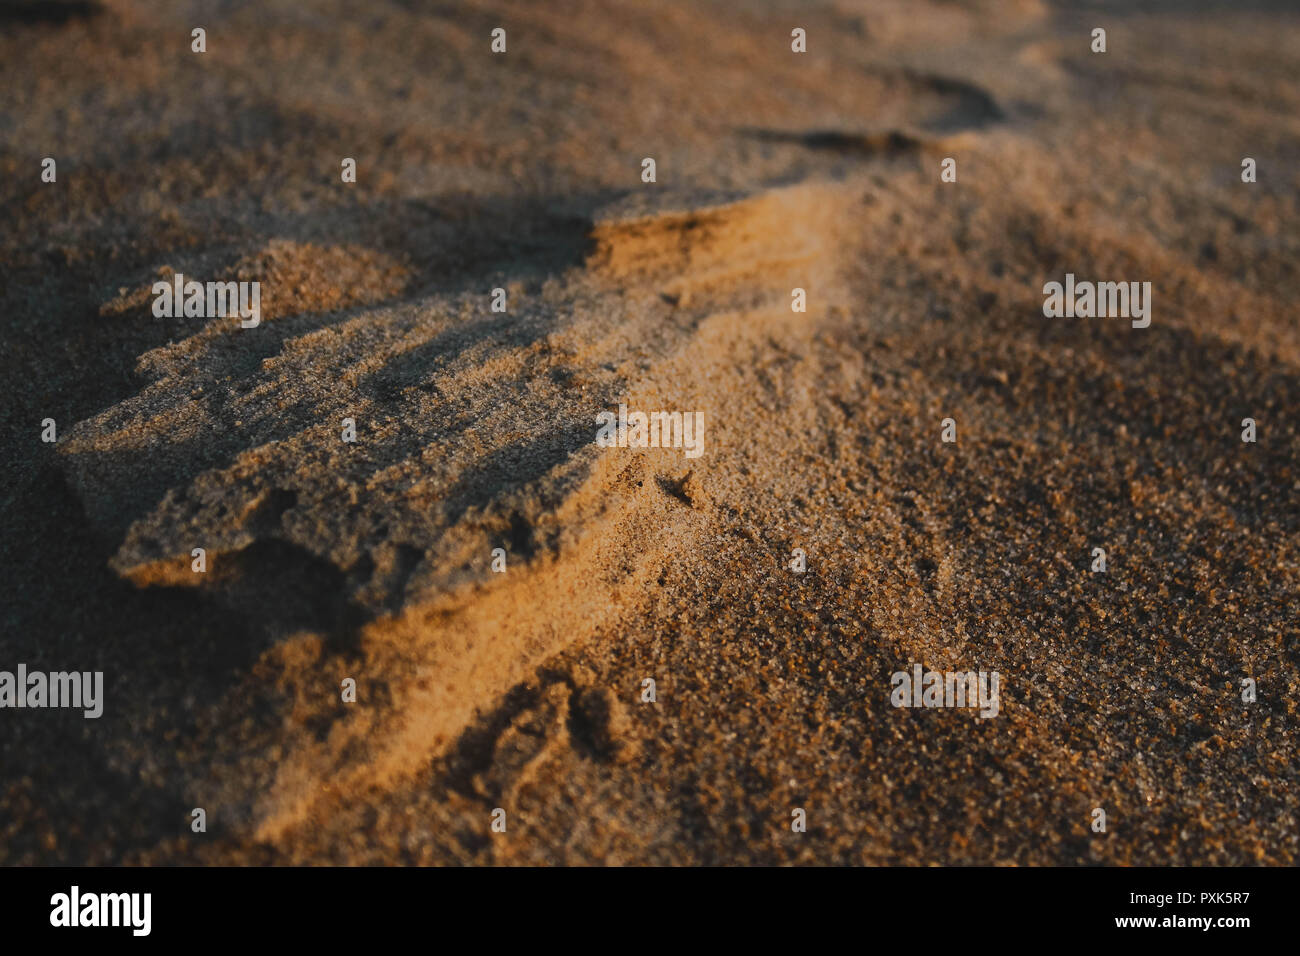 Just sand perfectly piled to look like mountains. - Stock Image